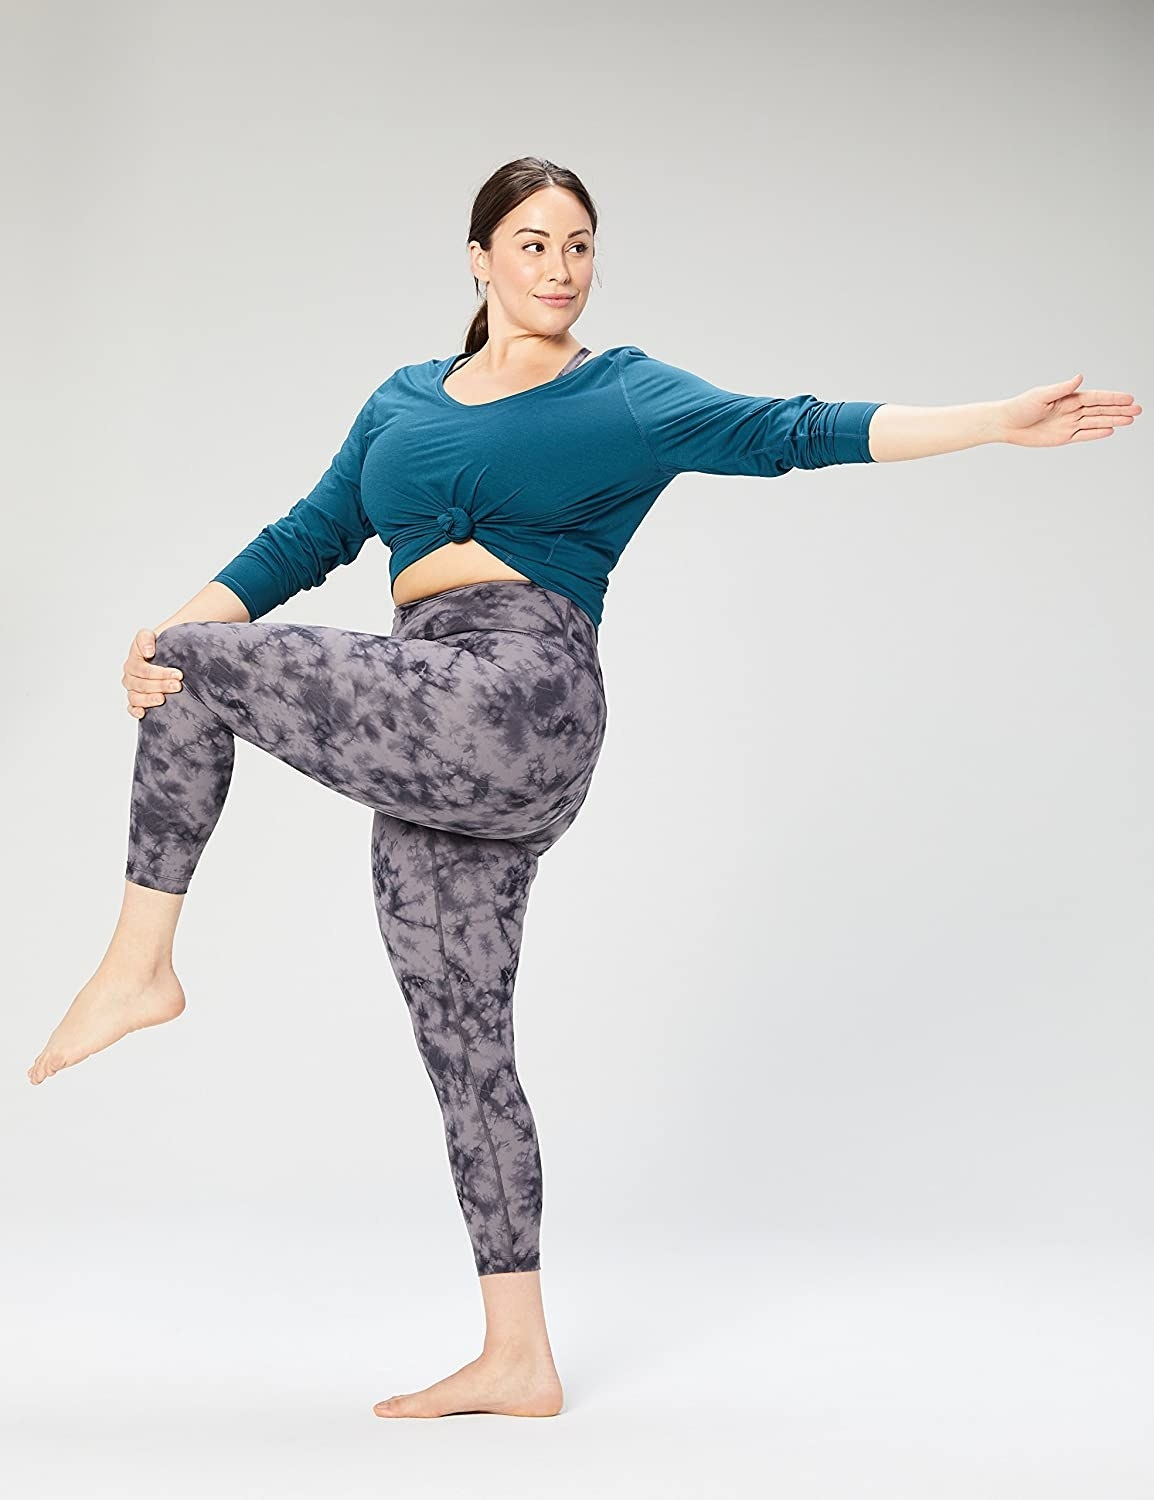 Model wearing the 7/8 grey leggings while holding a yoga pose